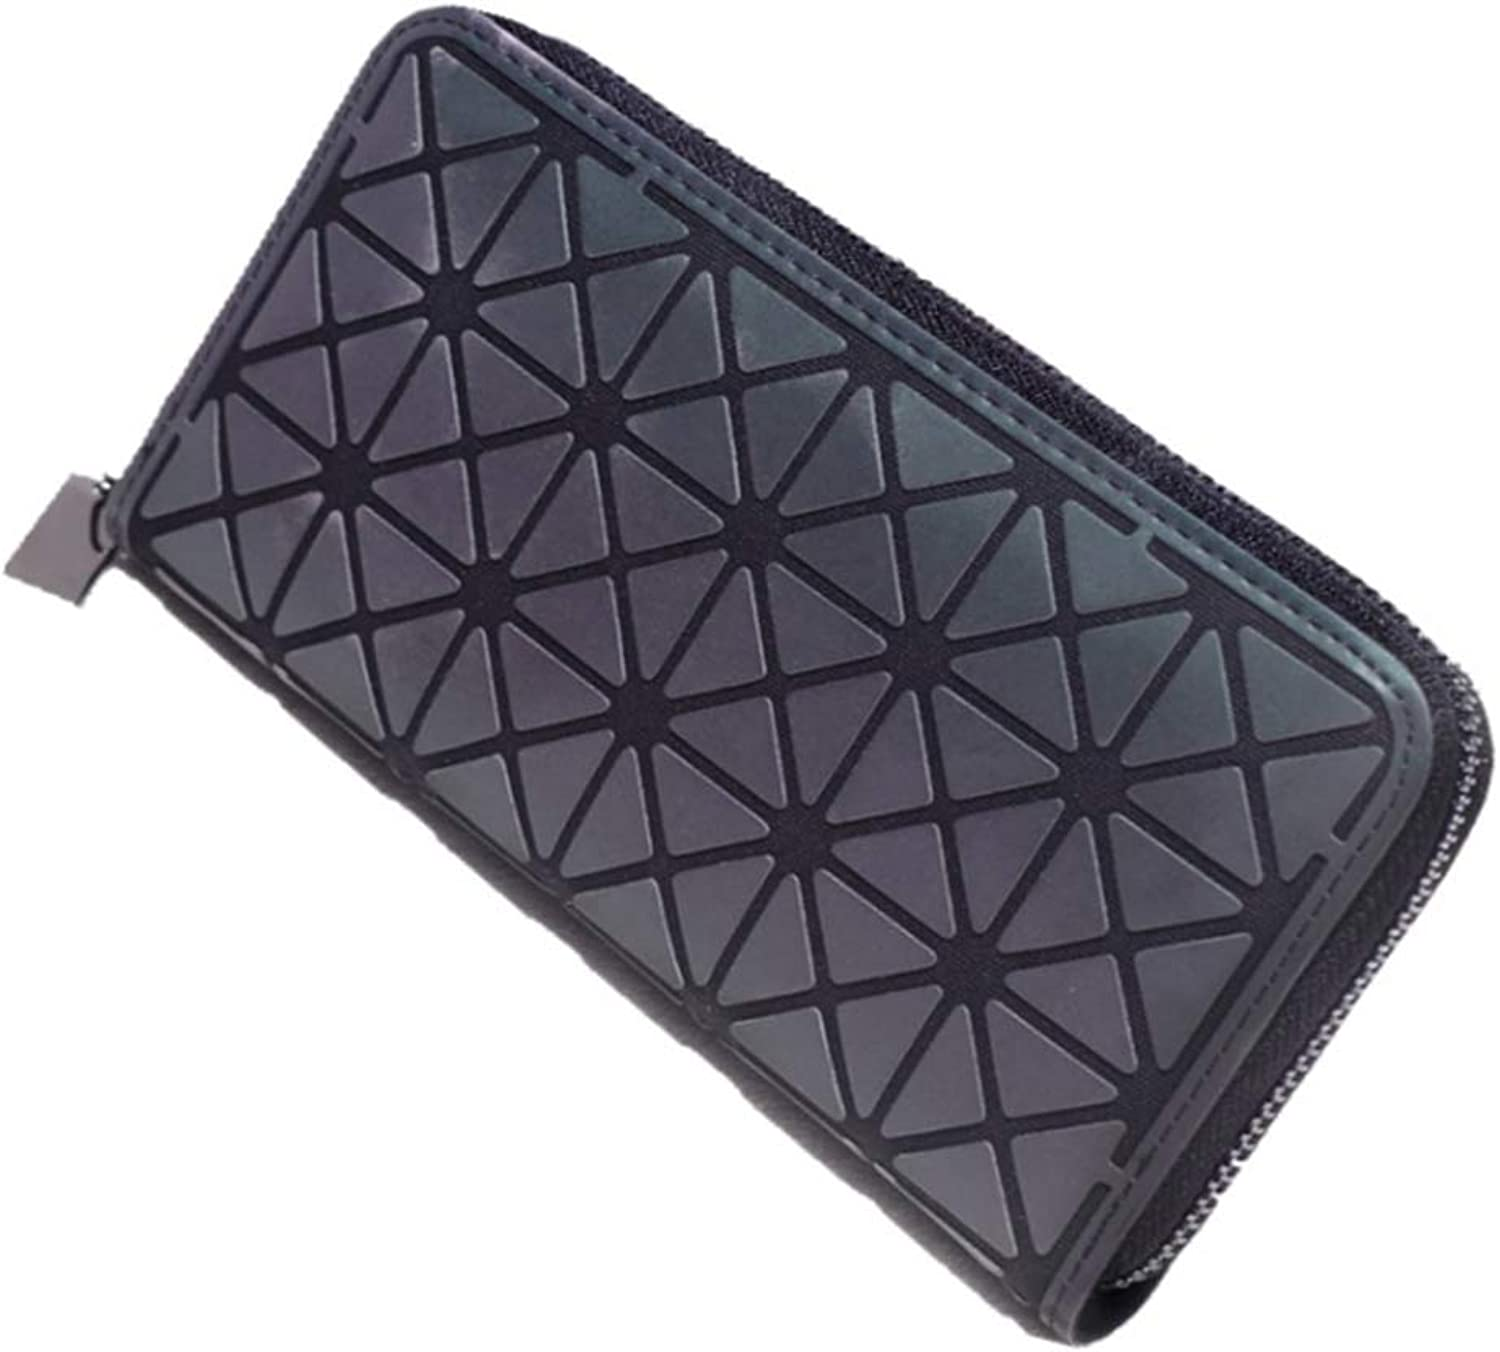 DIOMO Geometric Luminous Wallet Rainbow Holographic Zip Around Purse